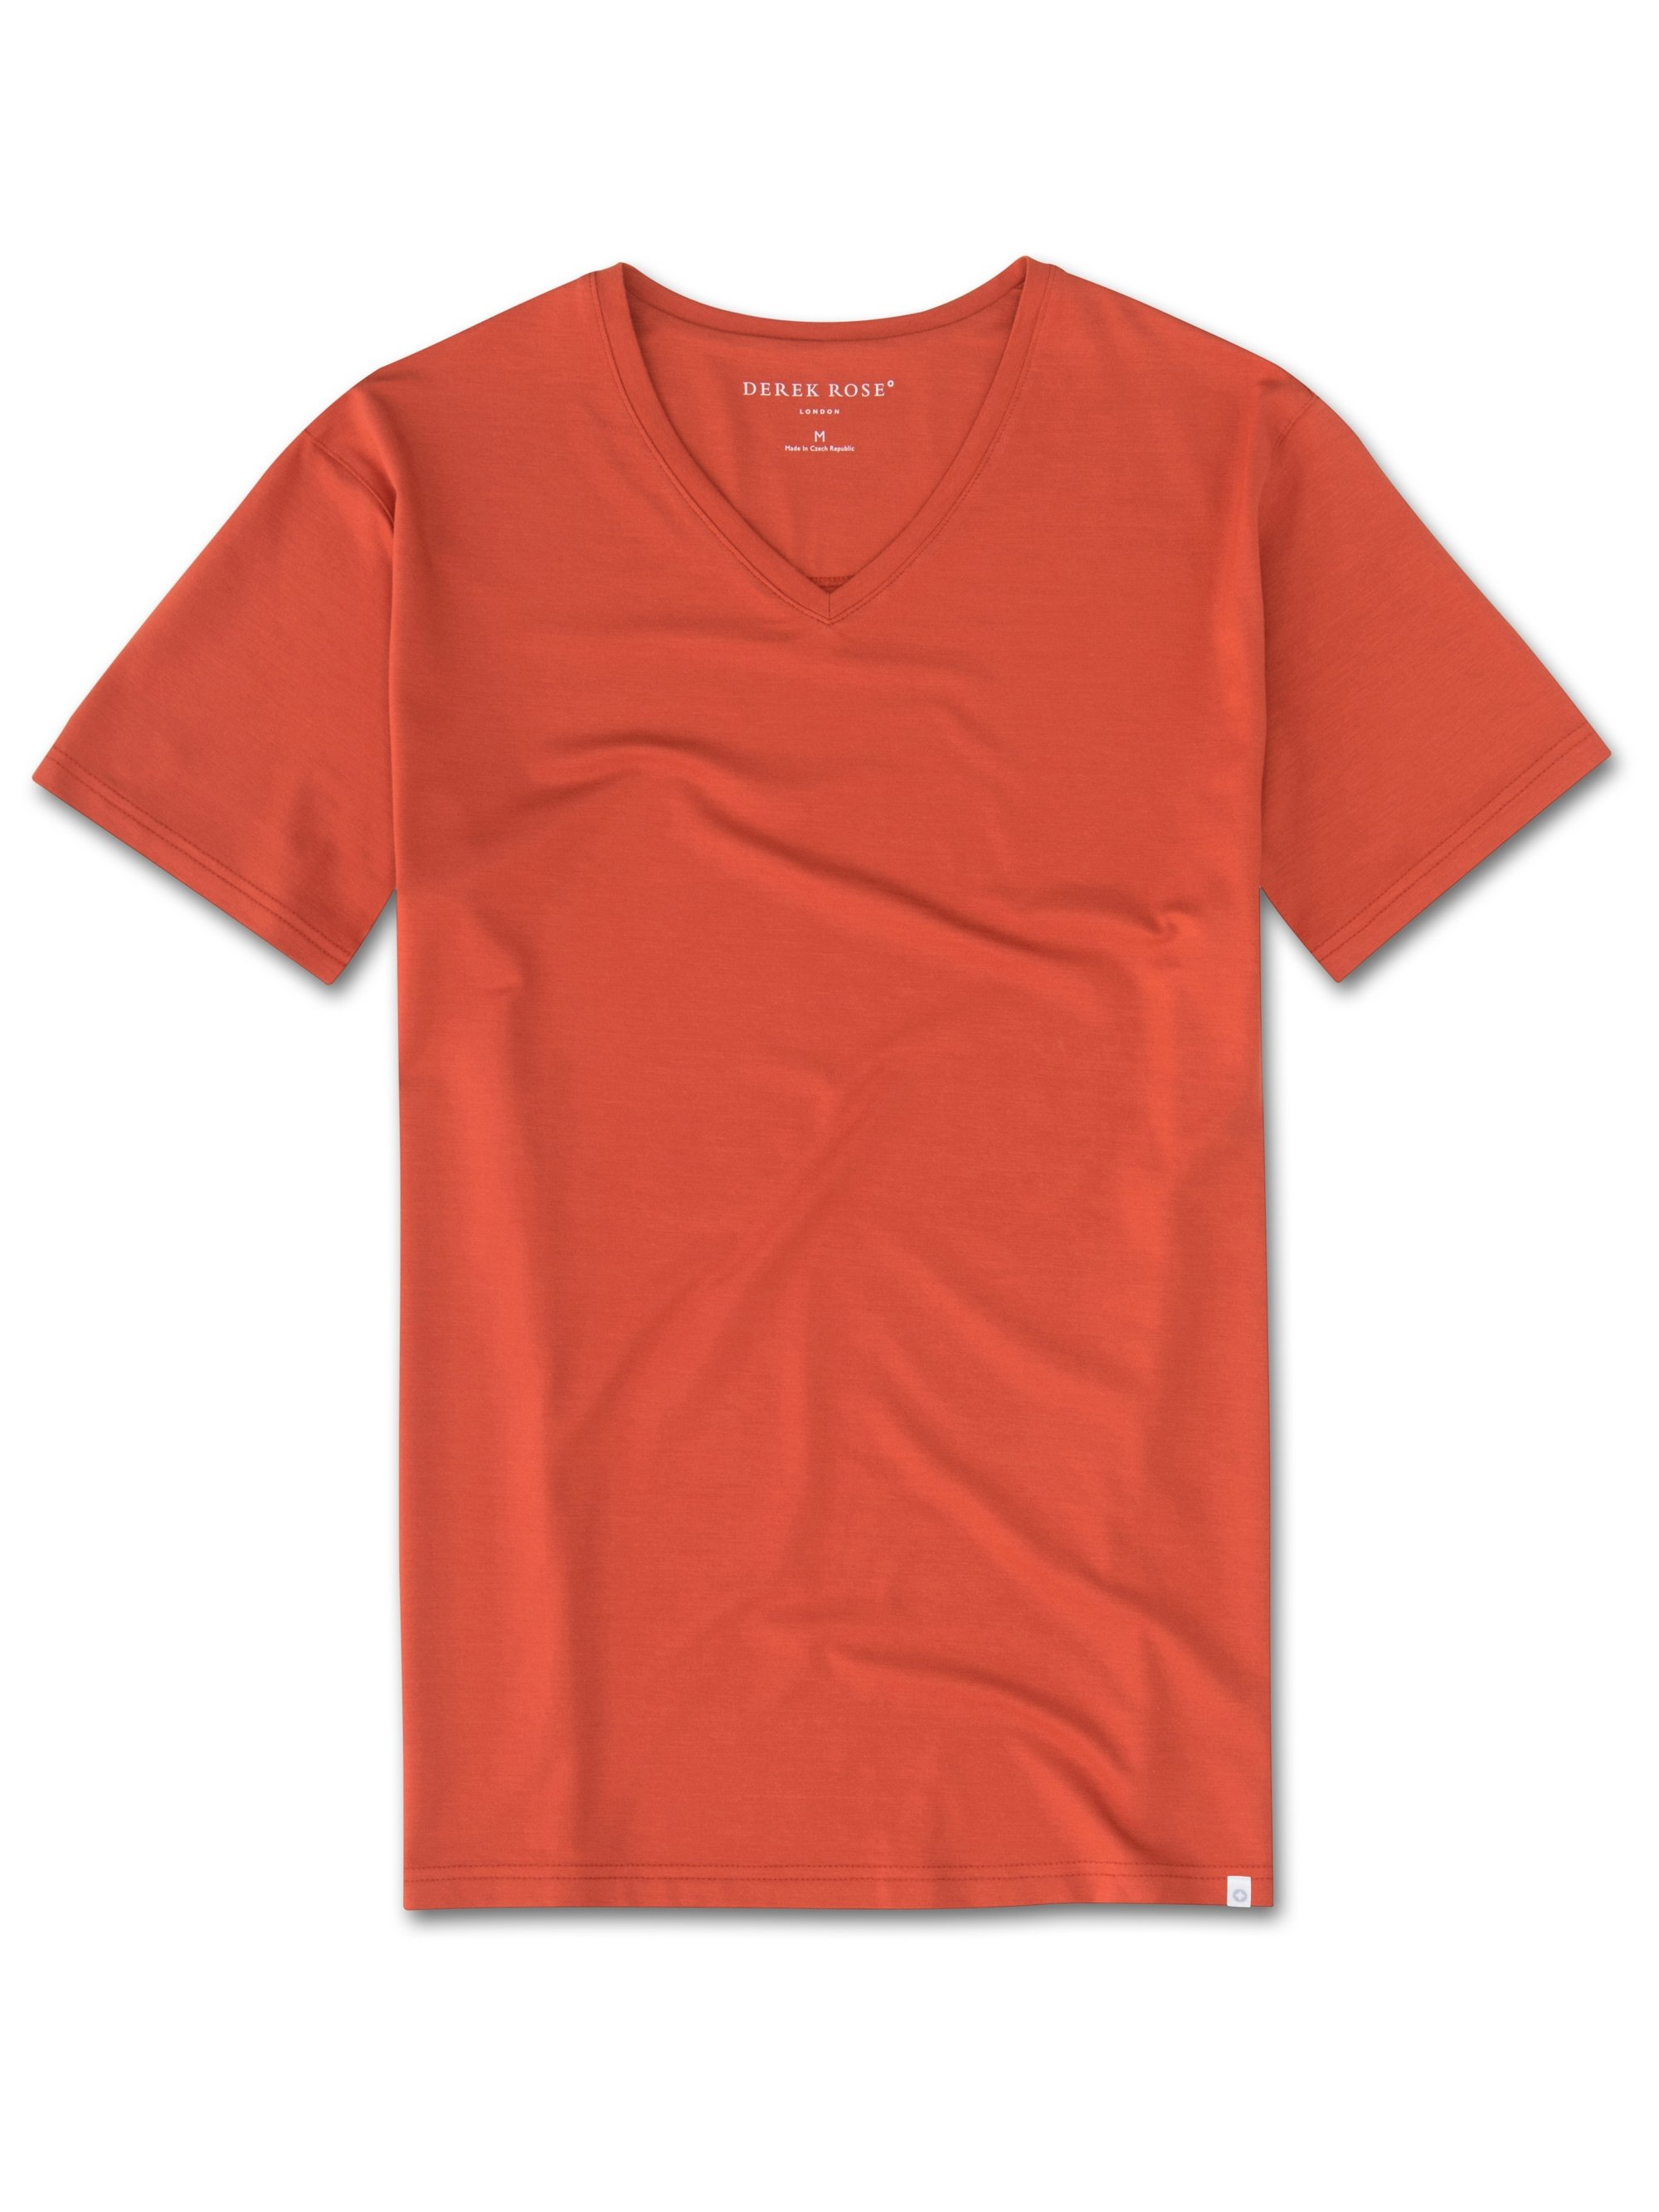 Men's Short Sleeve V-Neck T-Shirt Basel 5 Micro Modal Stretch Rust